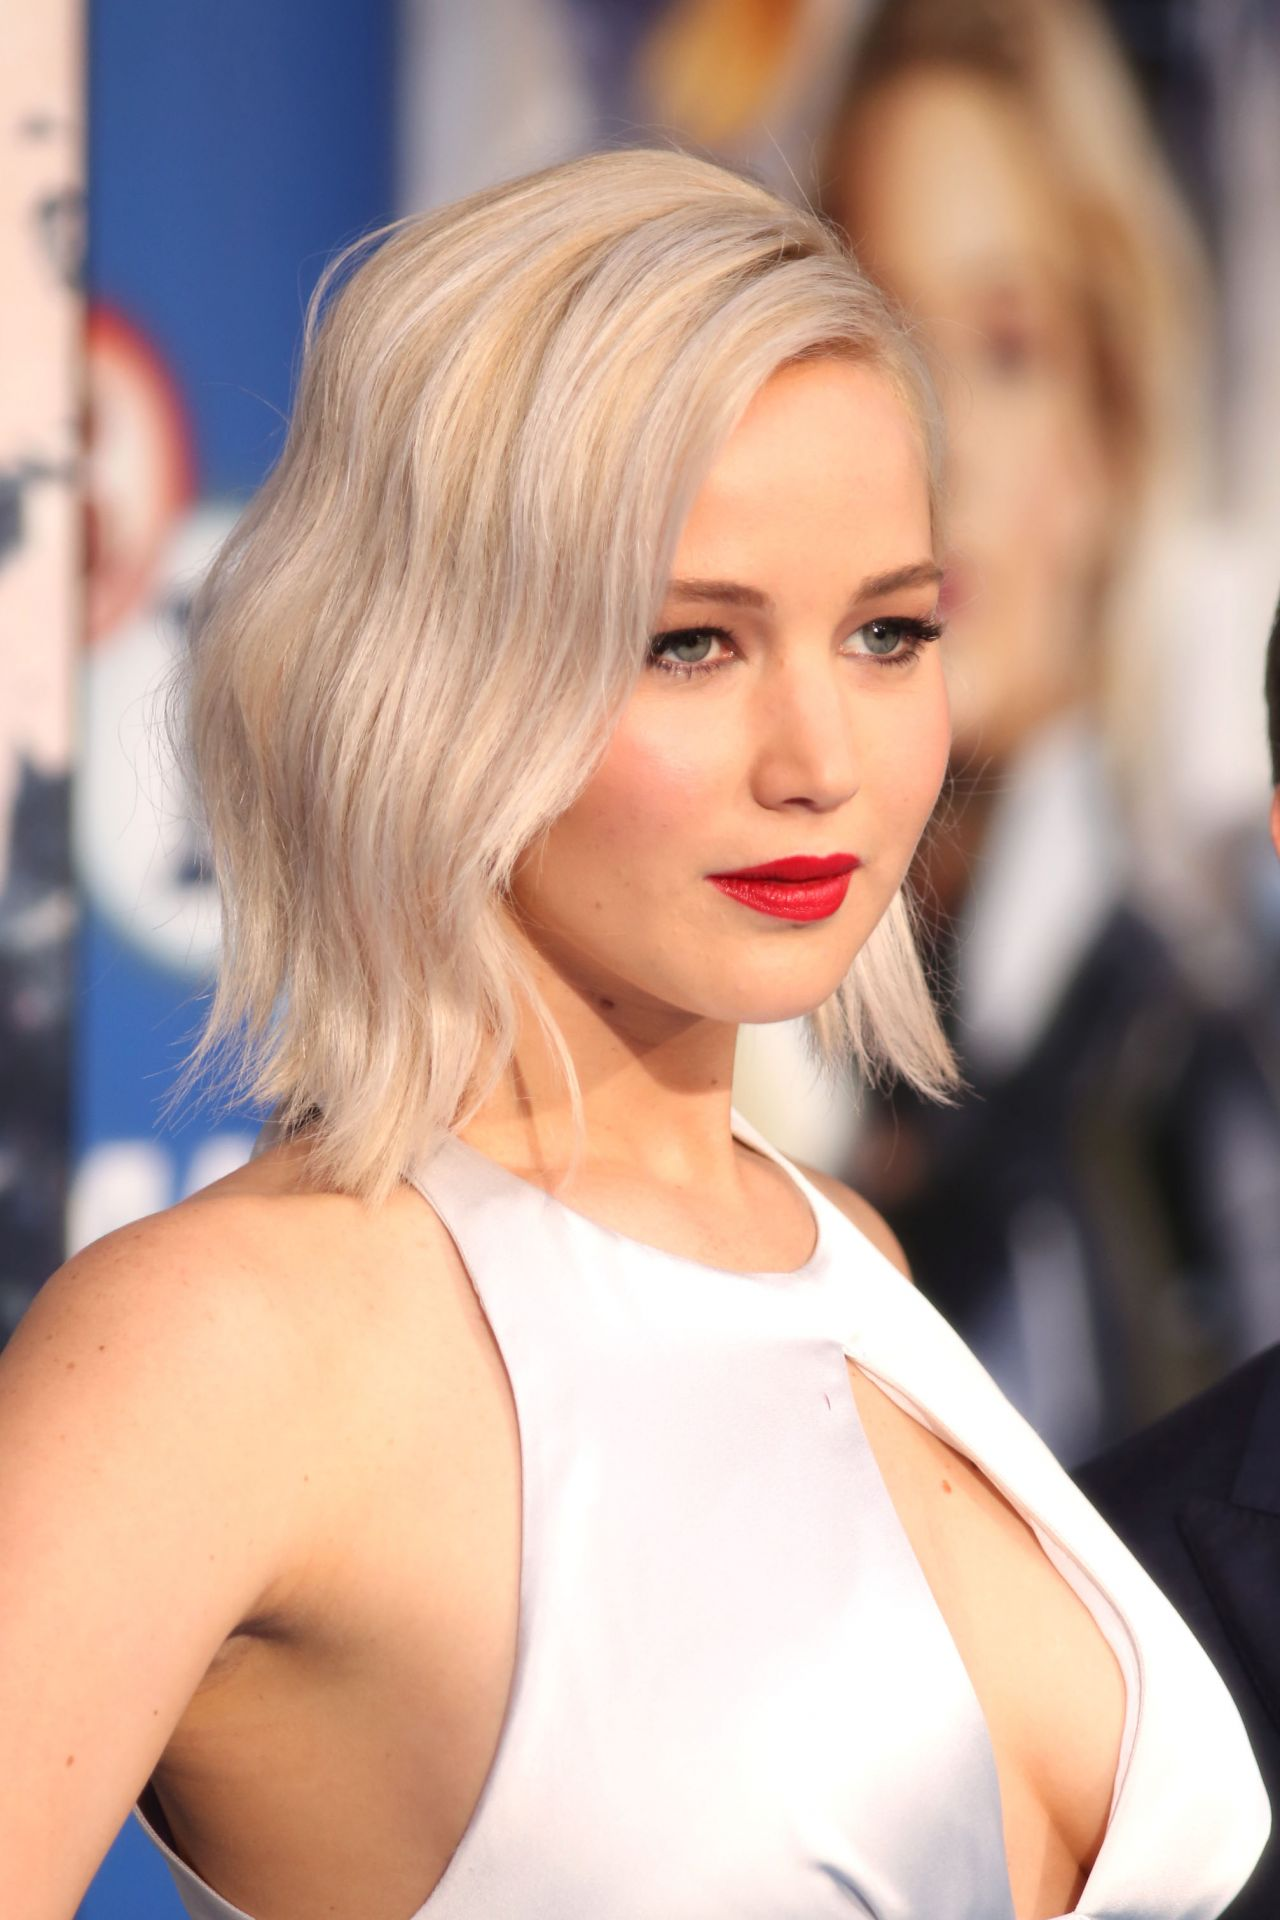 Jennifer Lawrence - X-Men Apocalypse Premiere In London -1293